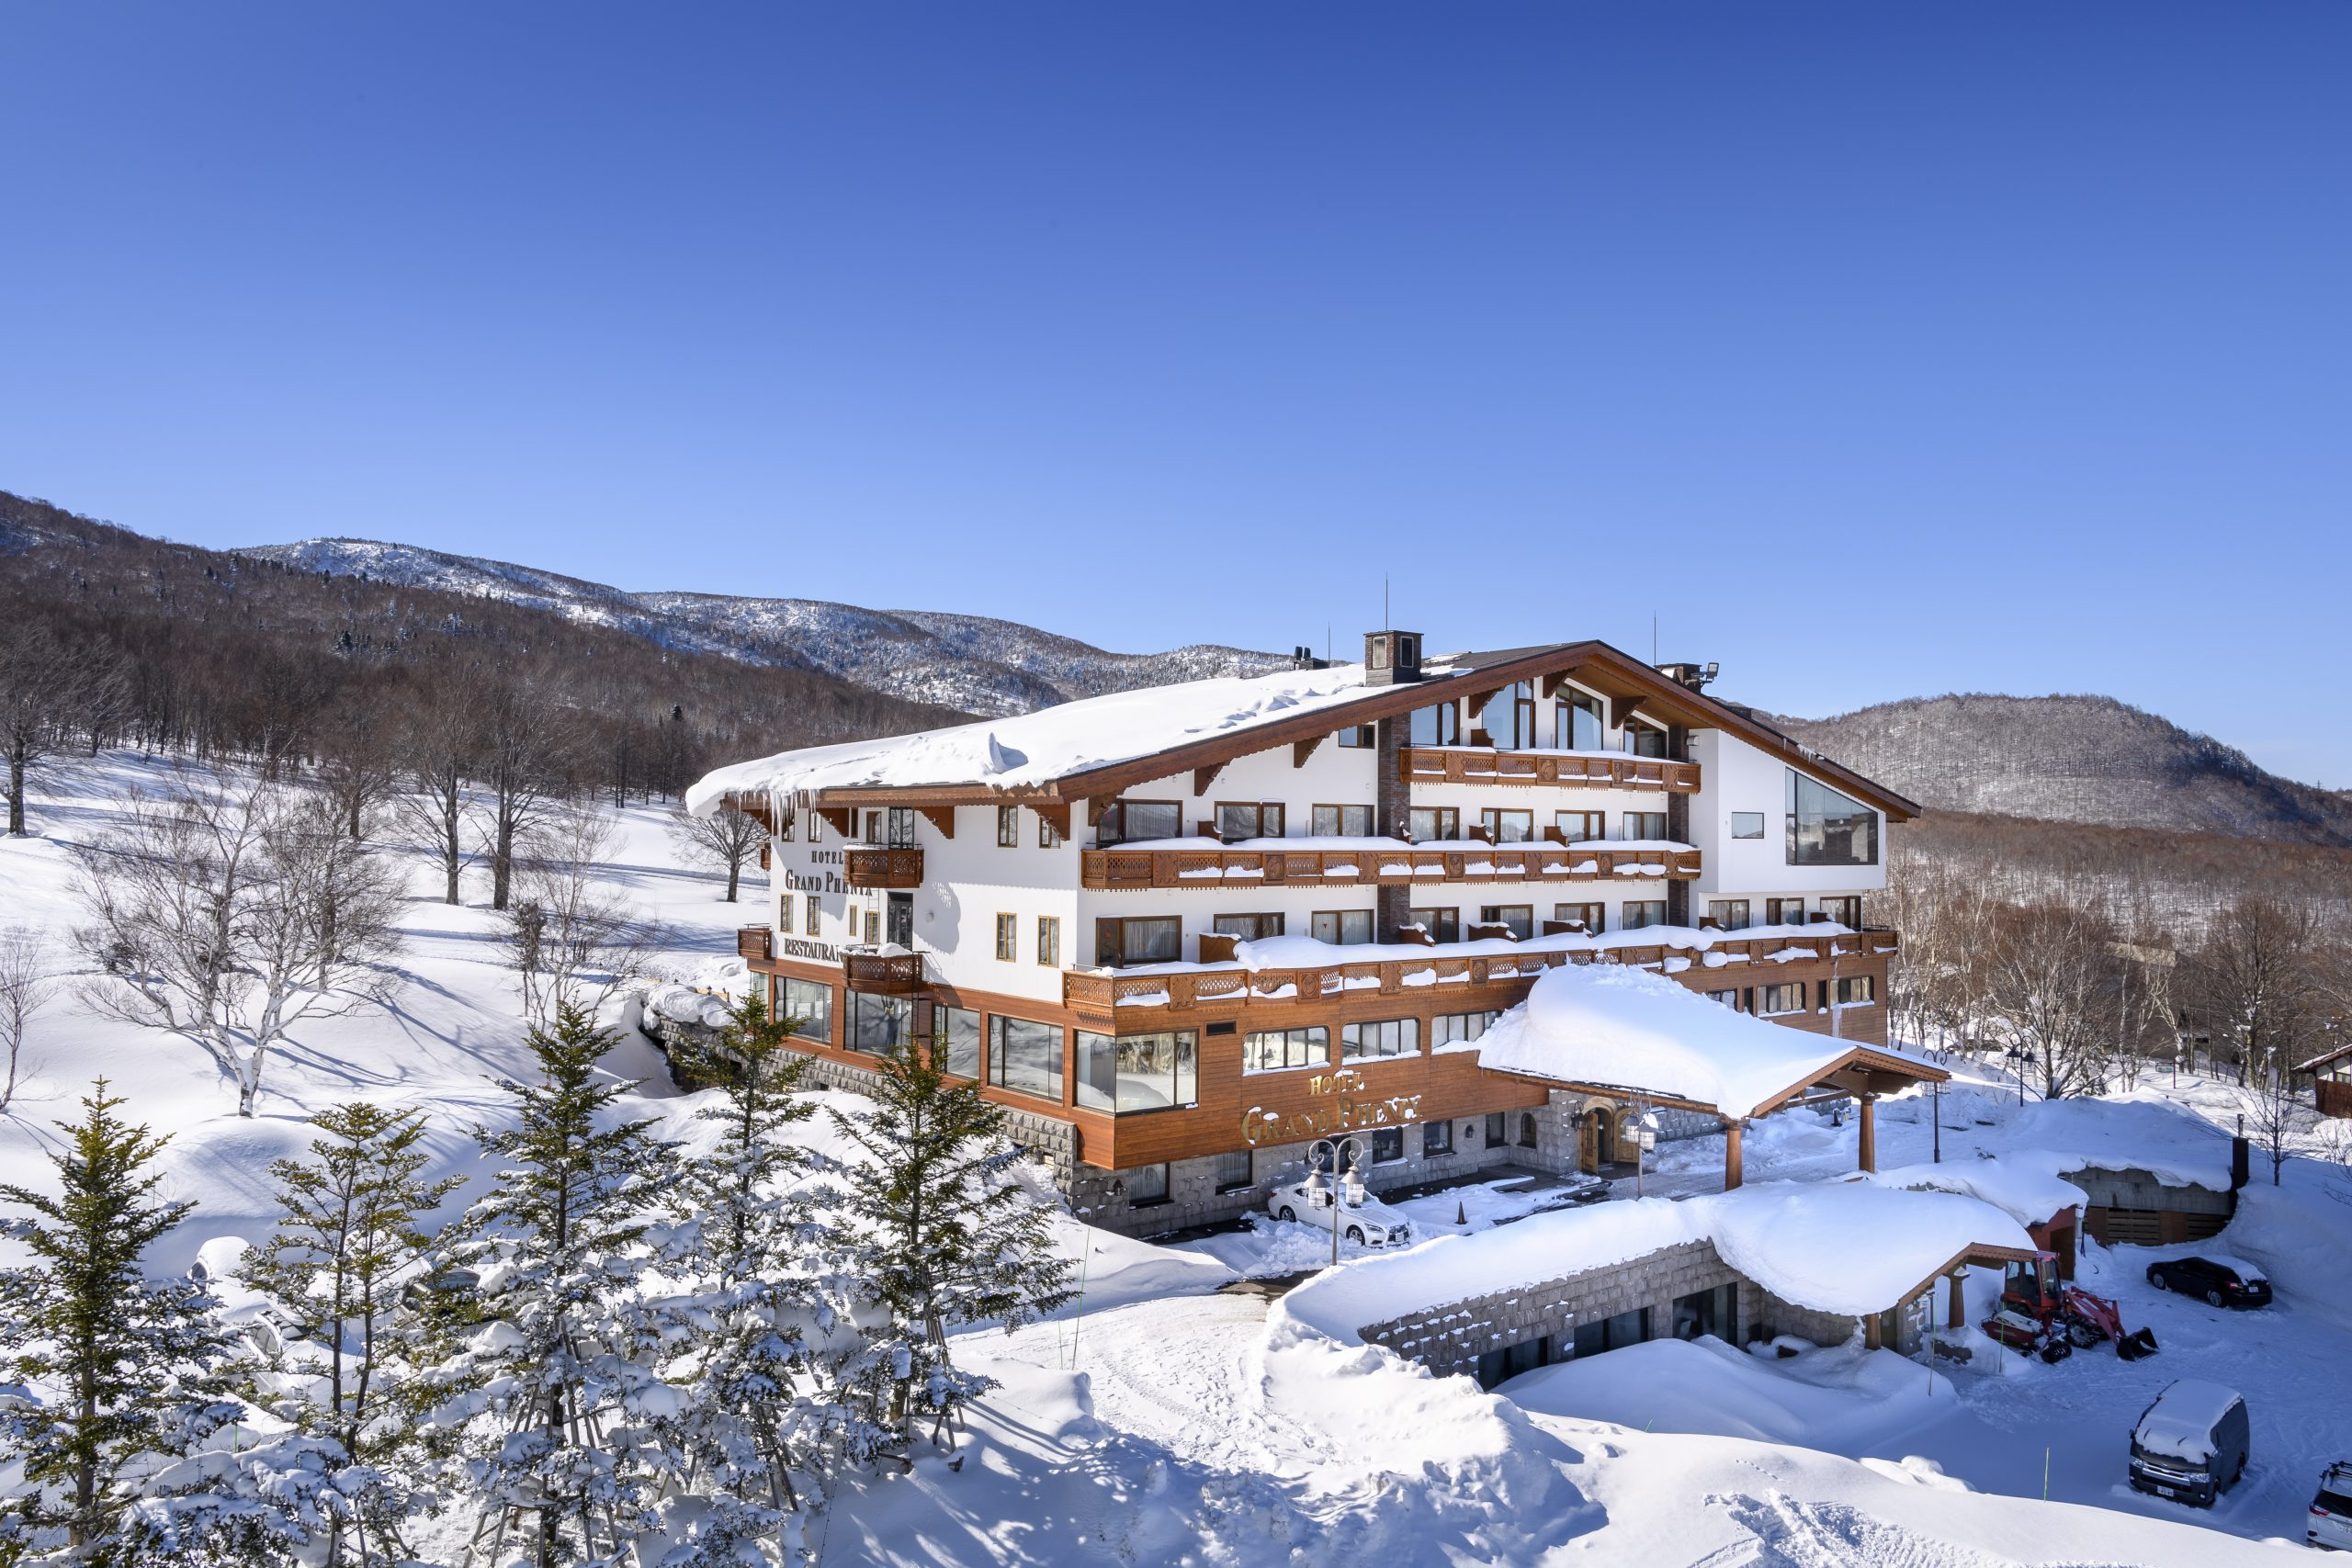 Stay in Shiga Kogen: Recommended Accommodation